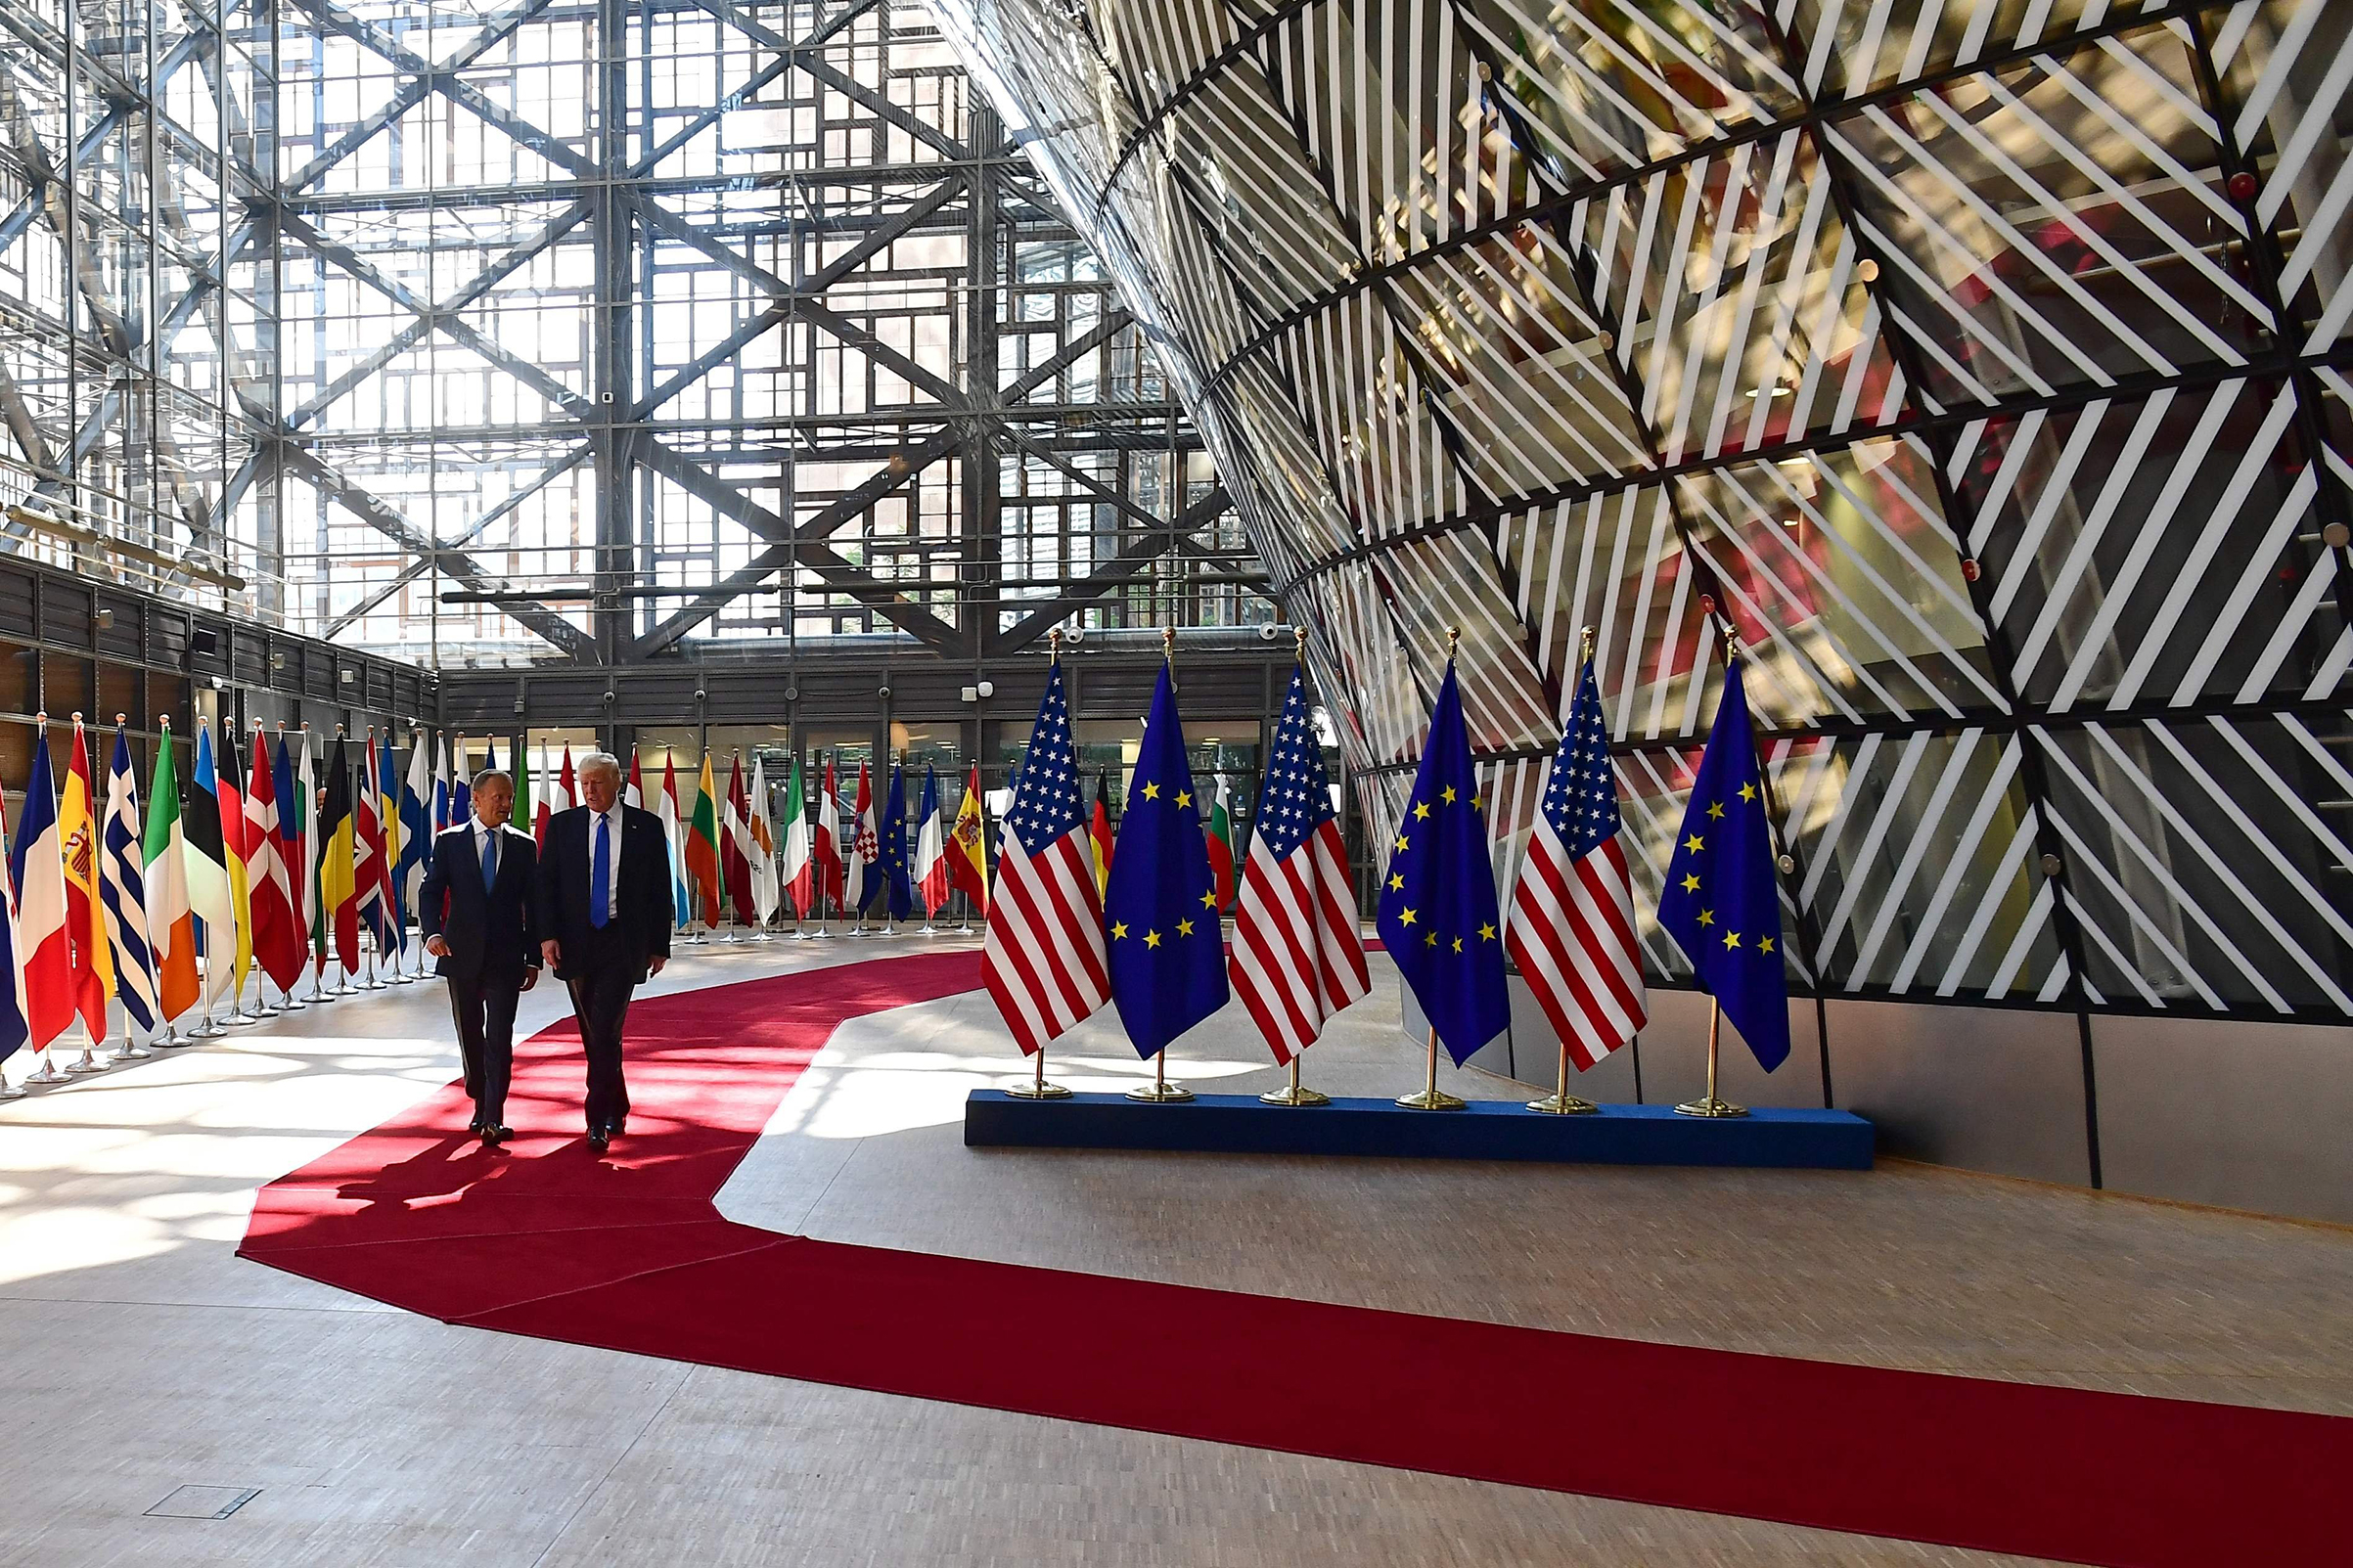 European Council President Donald Tusk speaks to President Trump after welcoming him at the E.U. headquarters, as part of the NATO meeting, in Brussels on May 25, 2017.